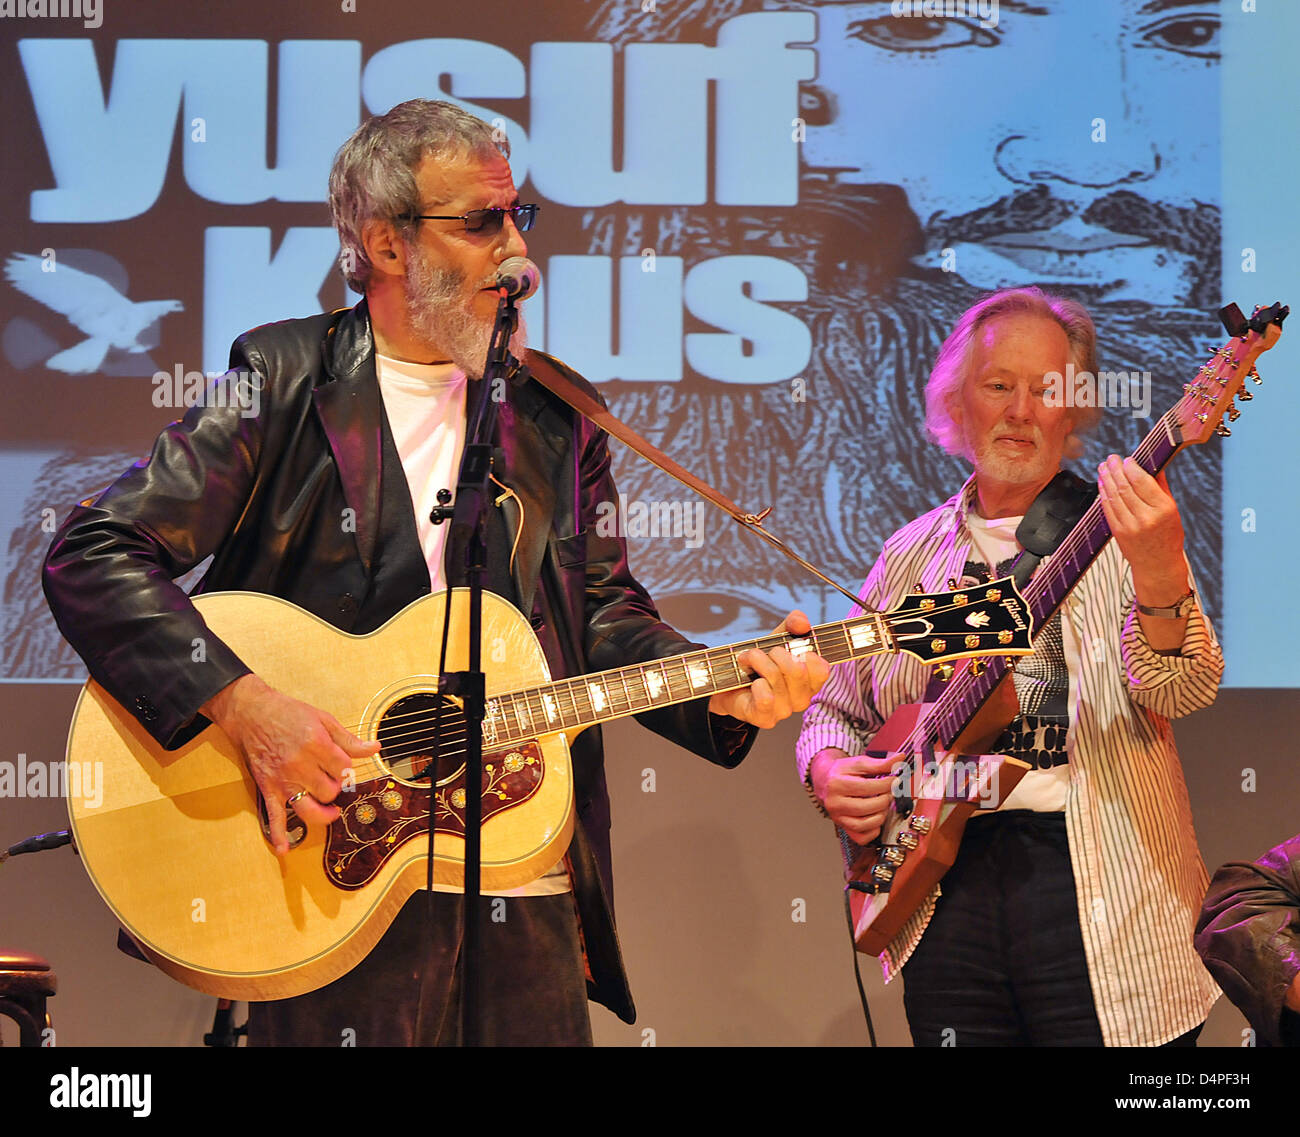 German bassist Klaus Voormann (R) and British musician Yusuf Islam, formerly known as Cat Stevens, perform at Voormann?s - Stock Image